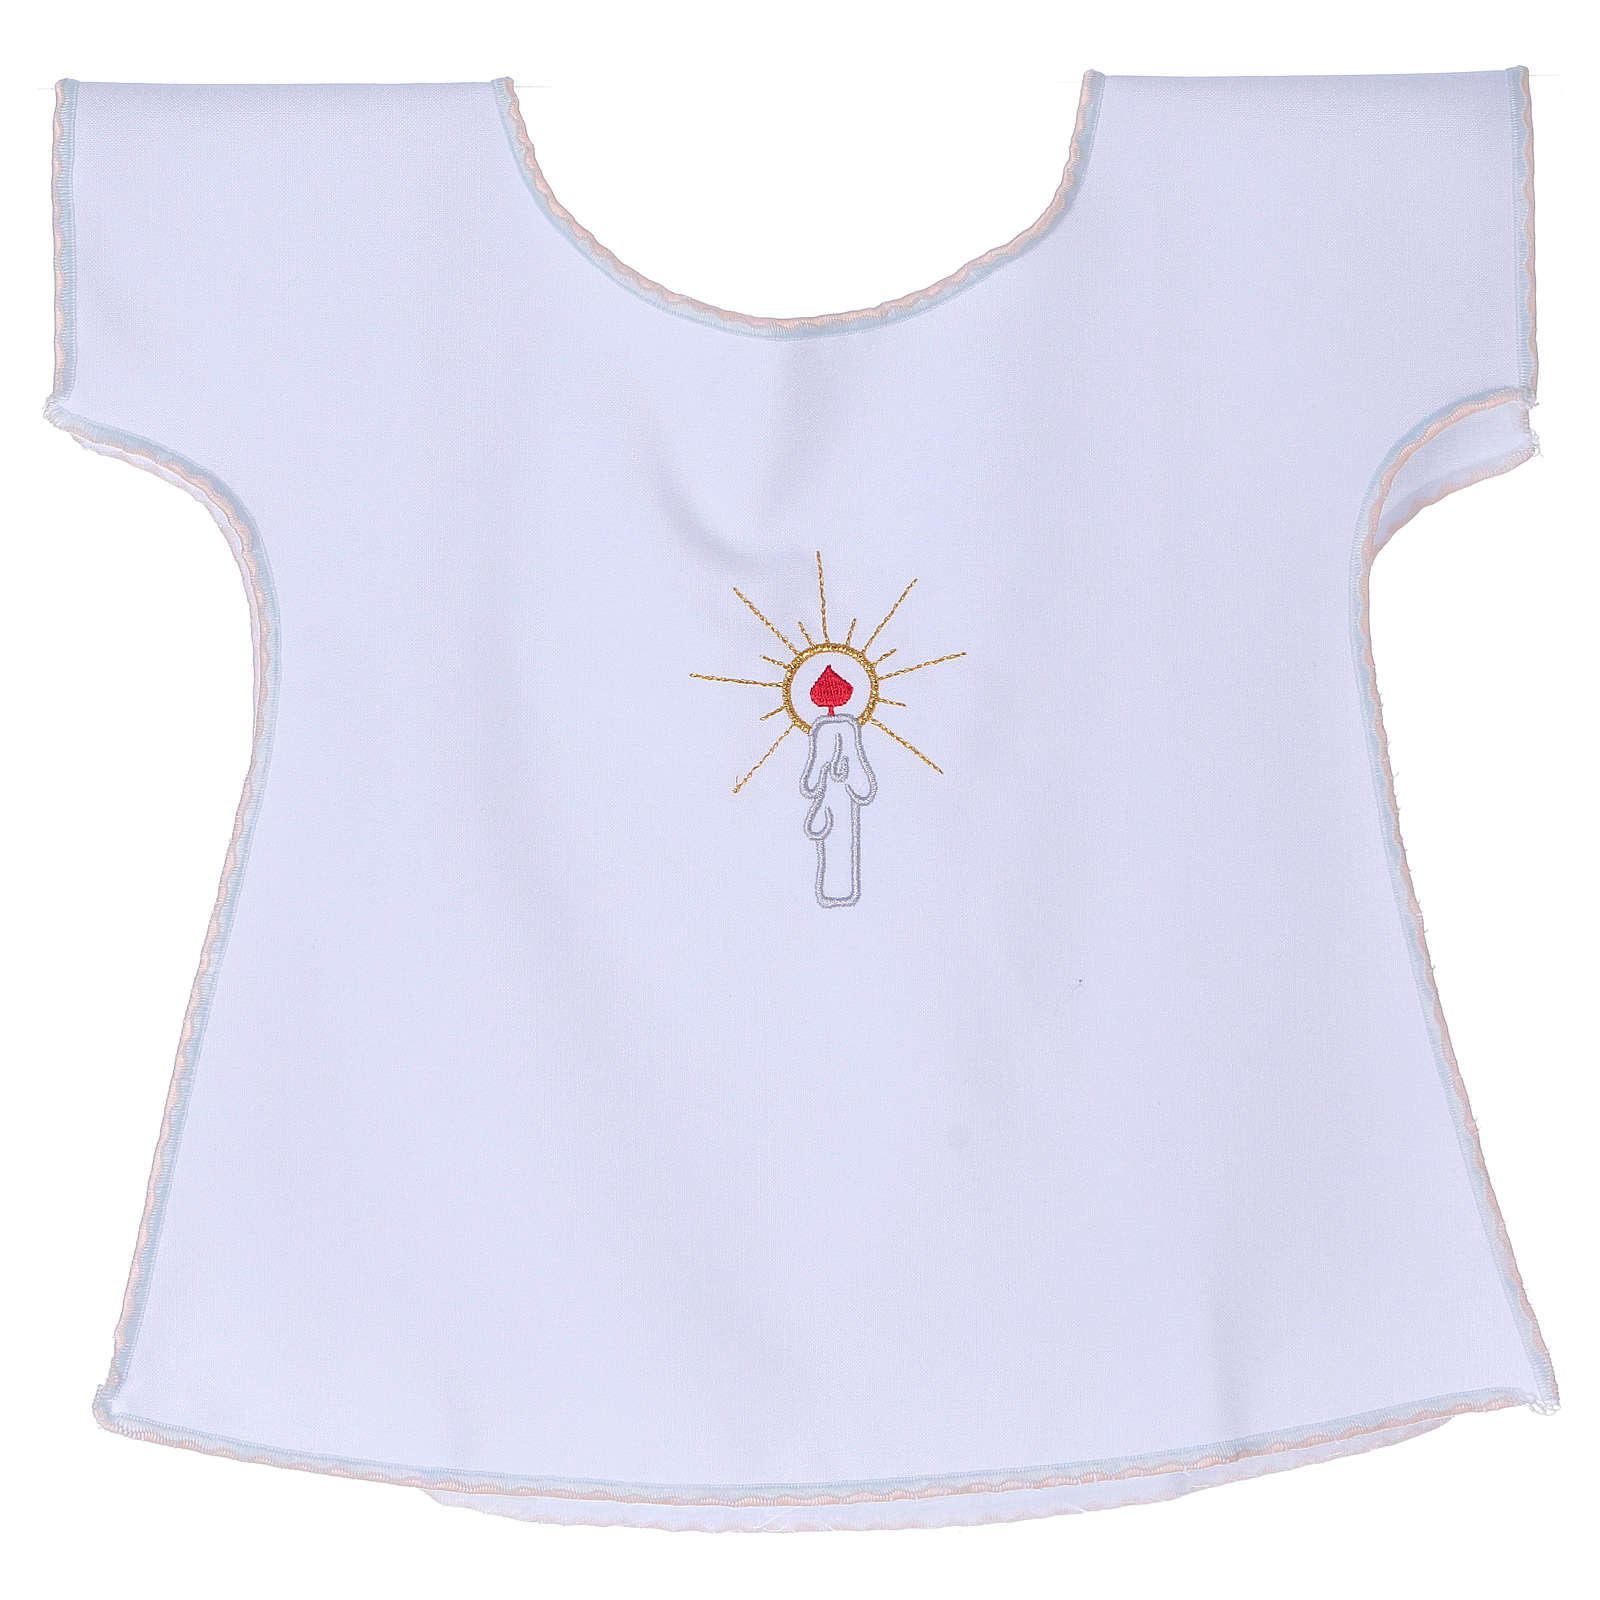 Baptism gown with candle 65% polyester 35% cotton 4